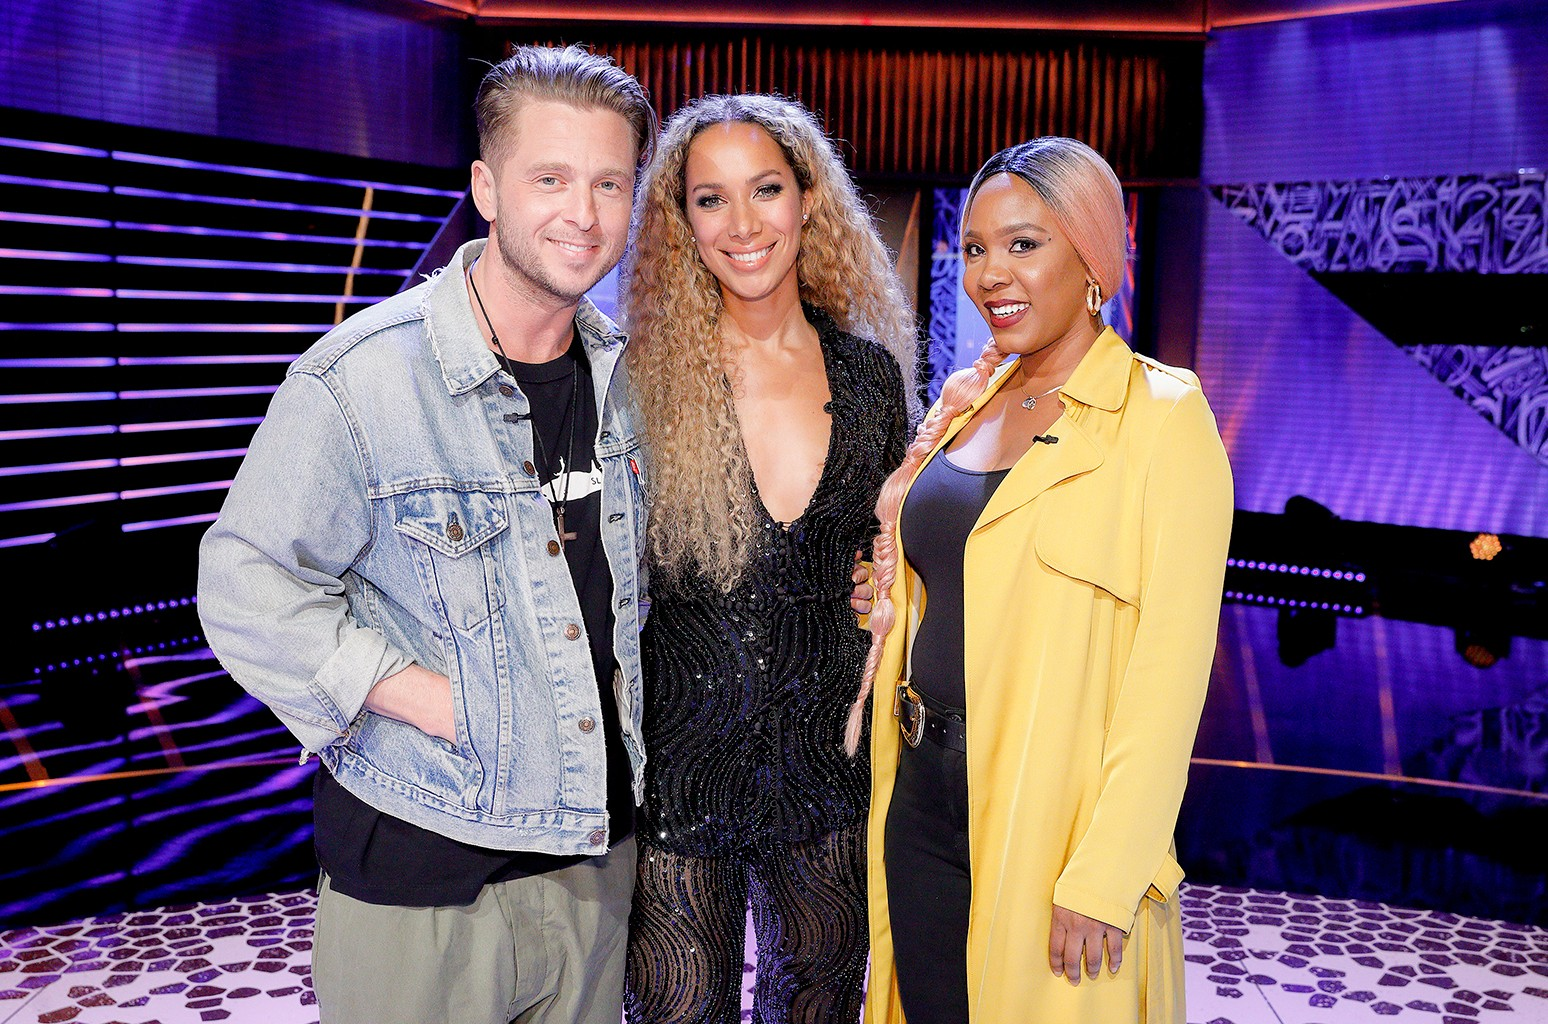 Ryan Tedder, Leona Lewis and Rozee